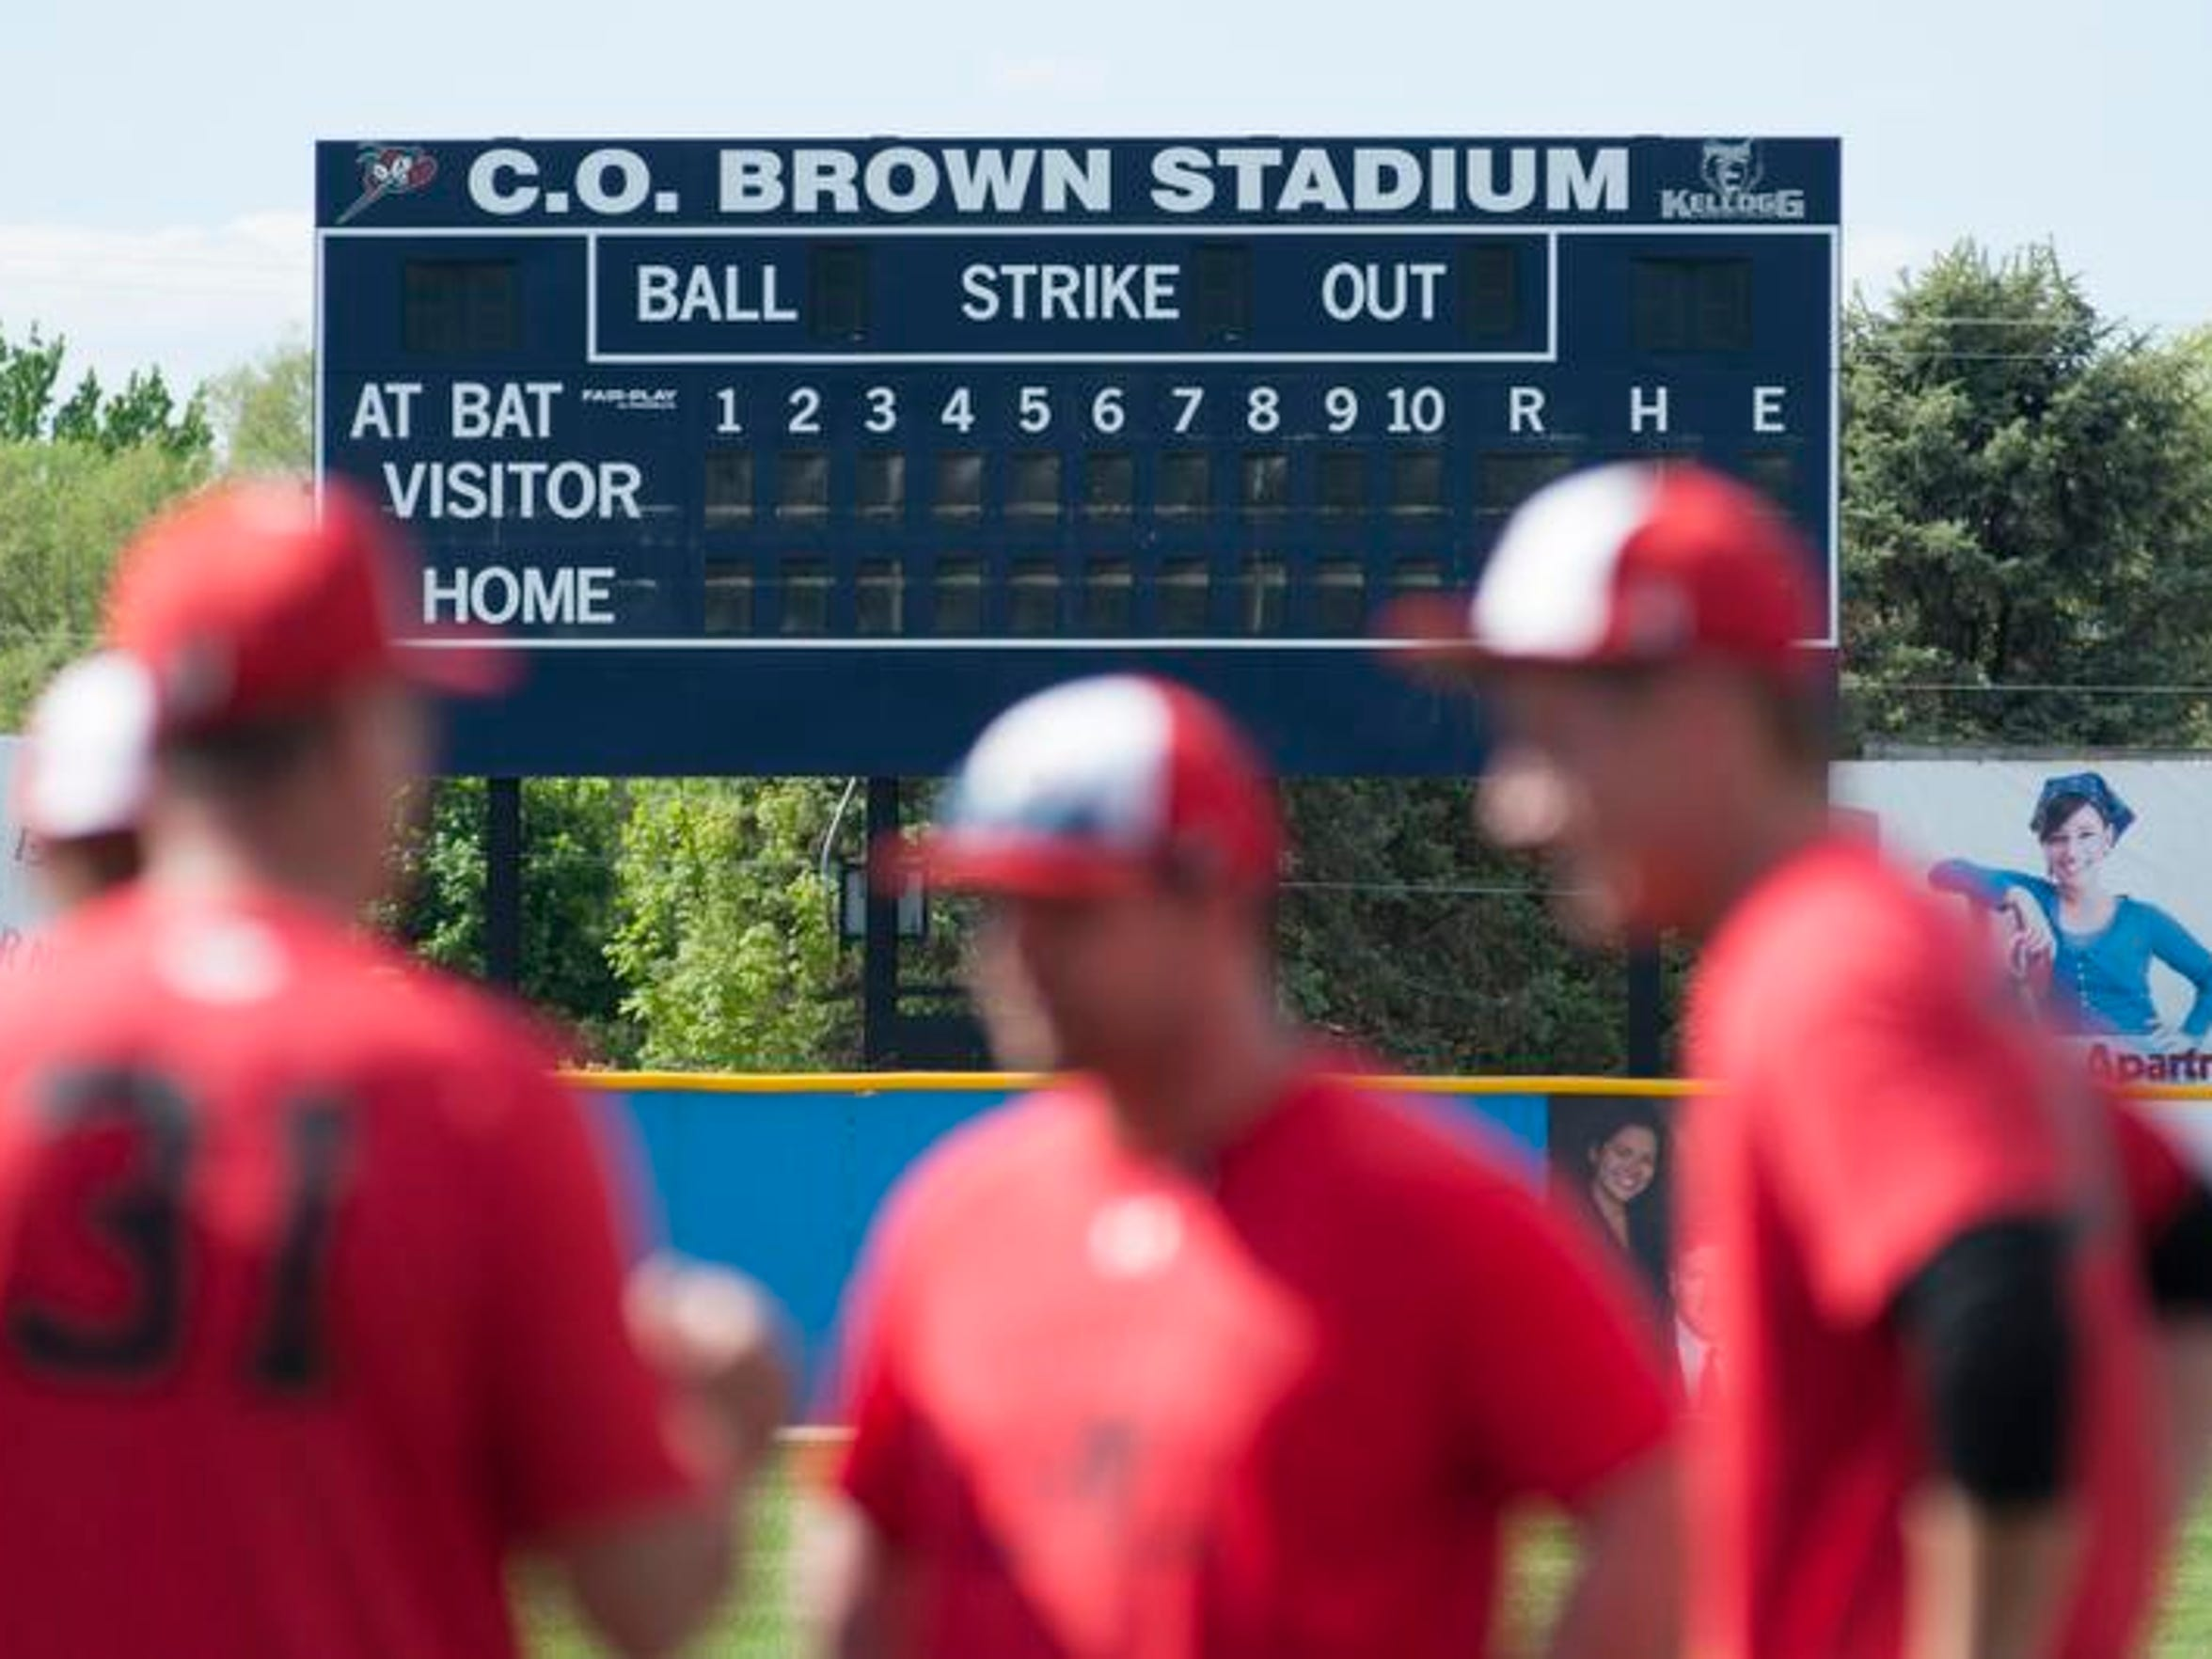 A look at the new scoreboard at C.O. Brown Stadium.